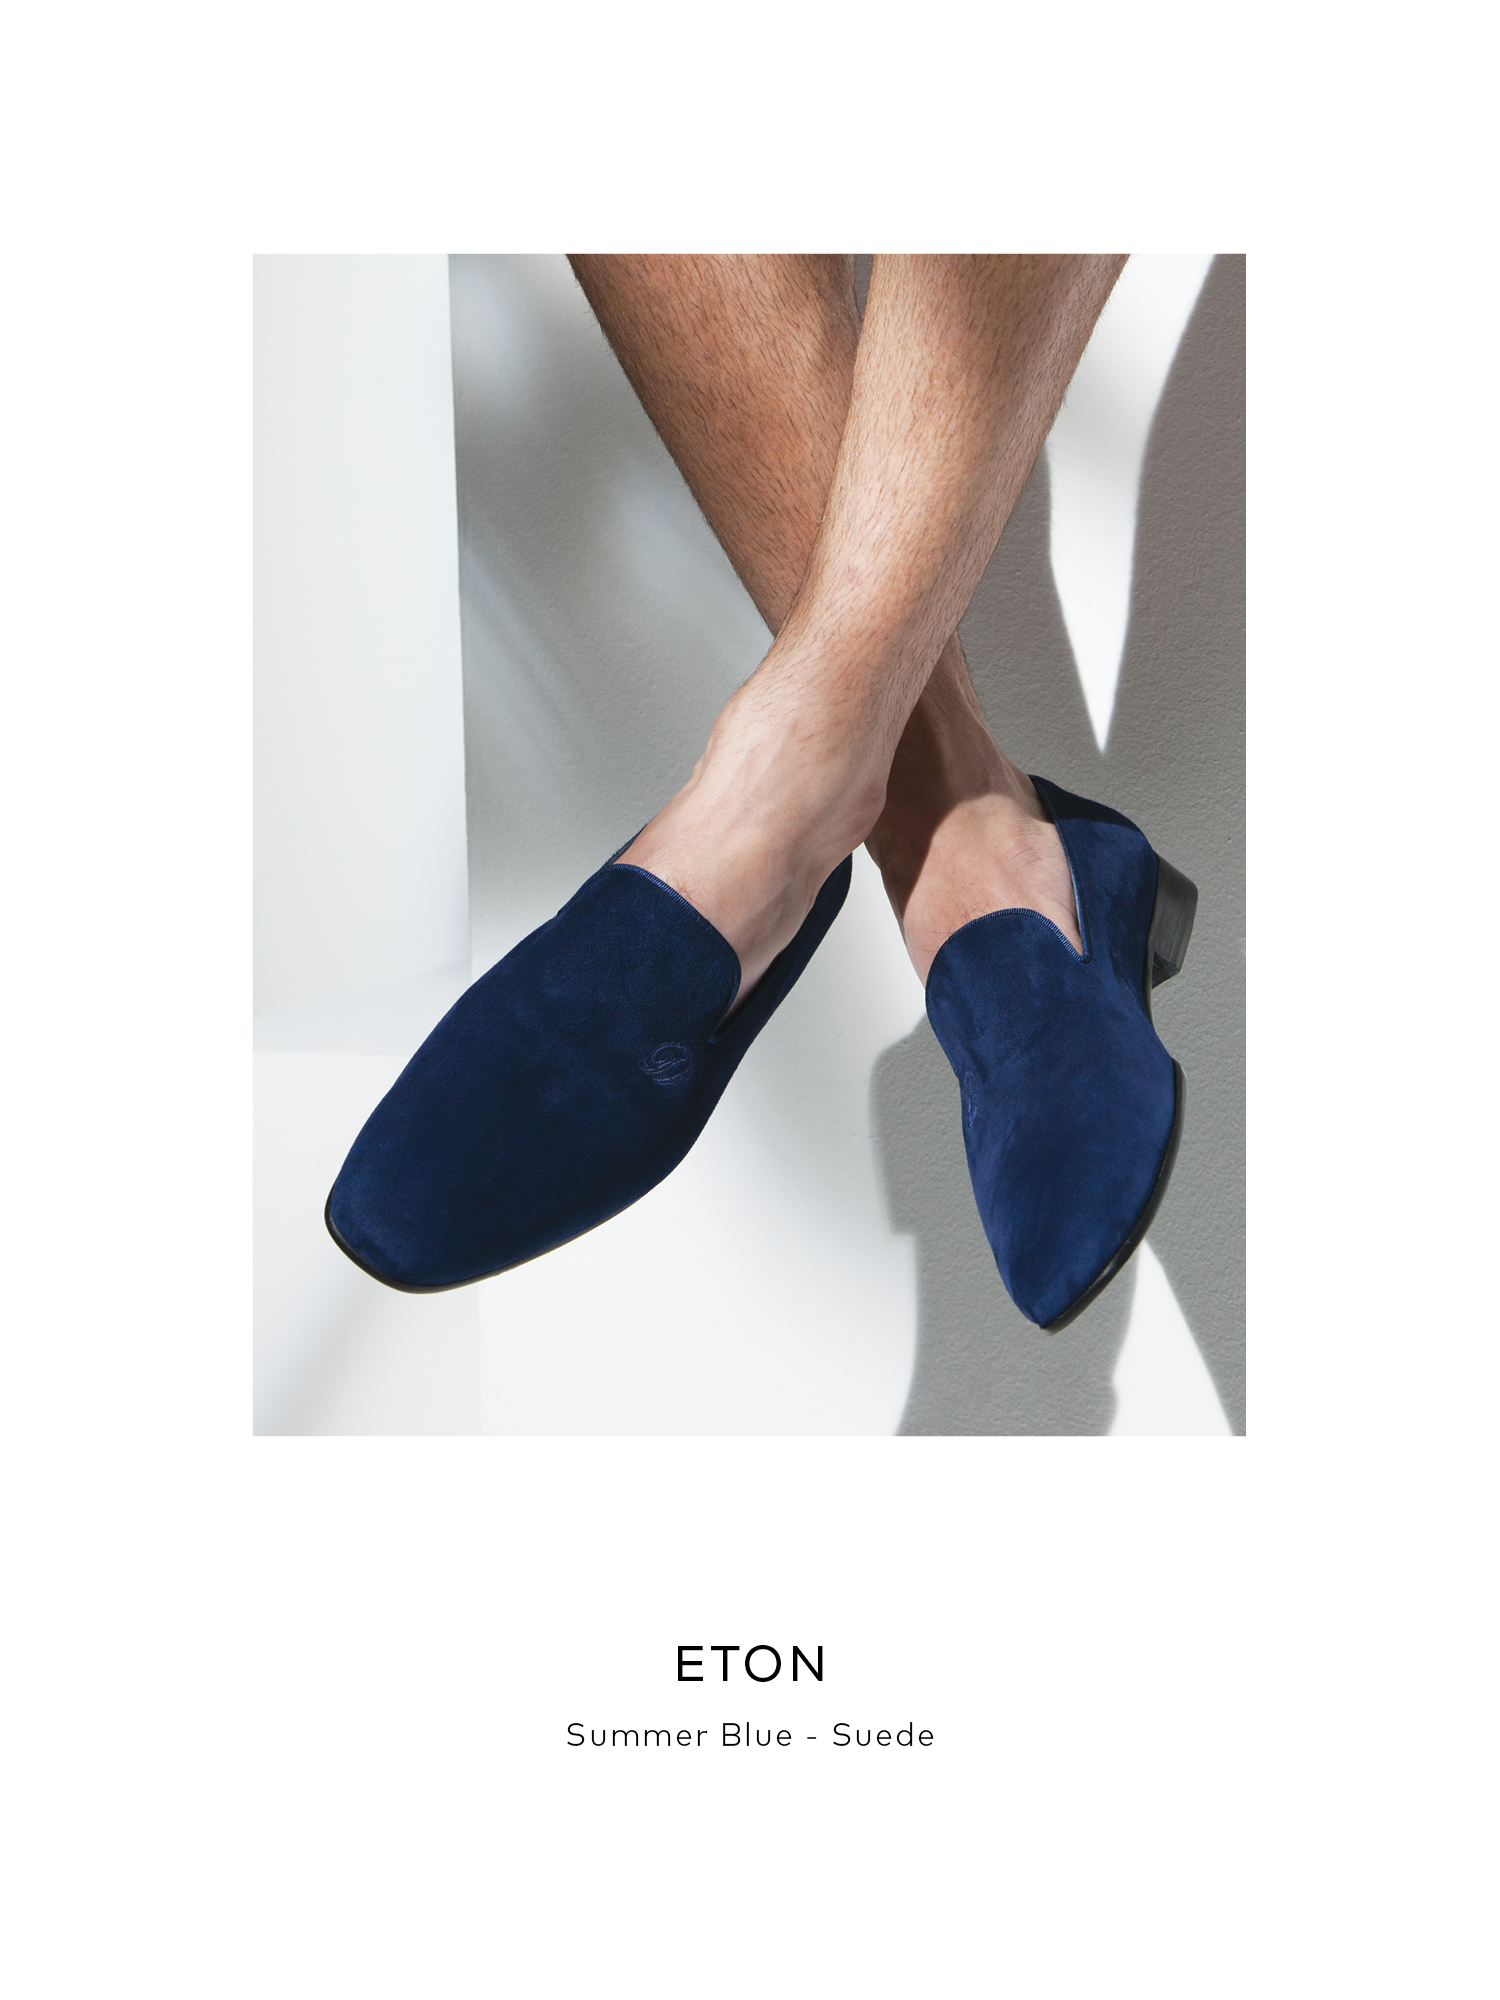 Eton, Summer BLue - Suede